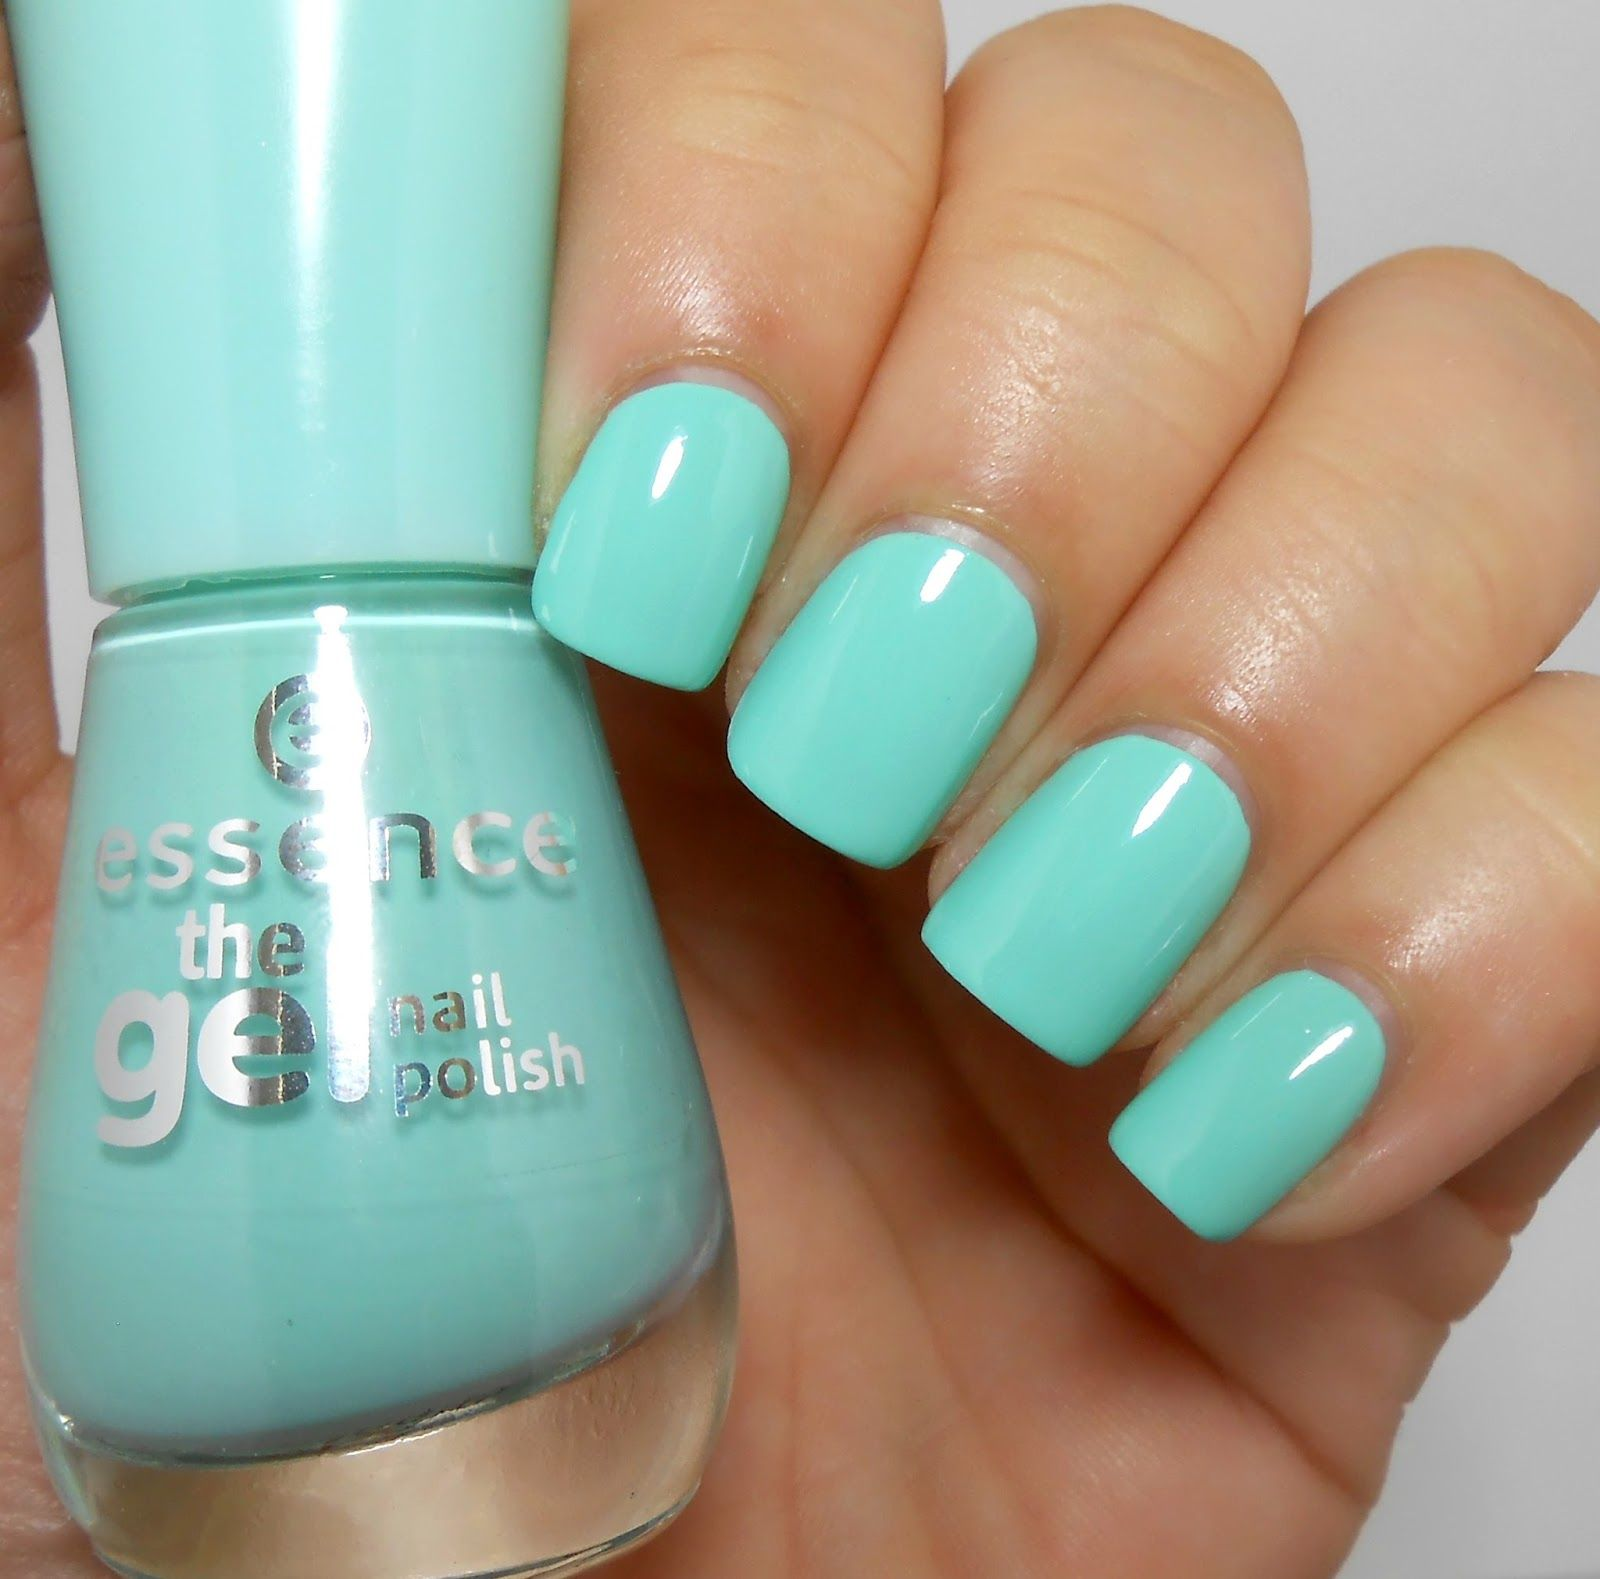 Uñas Gel Sin Lampara Taya Review And Swatches Essence The Gel Nail Polish